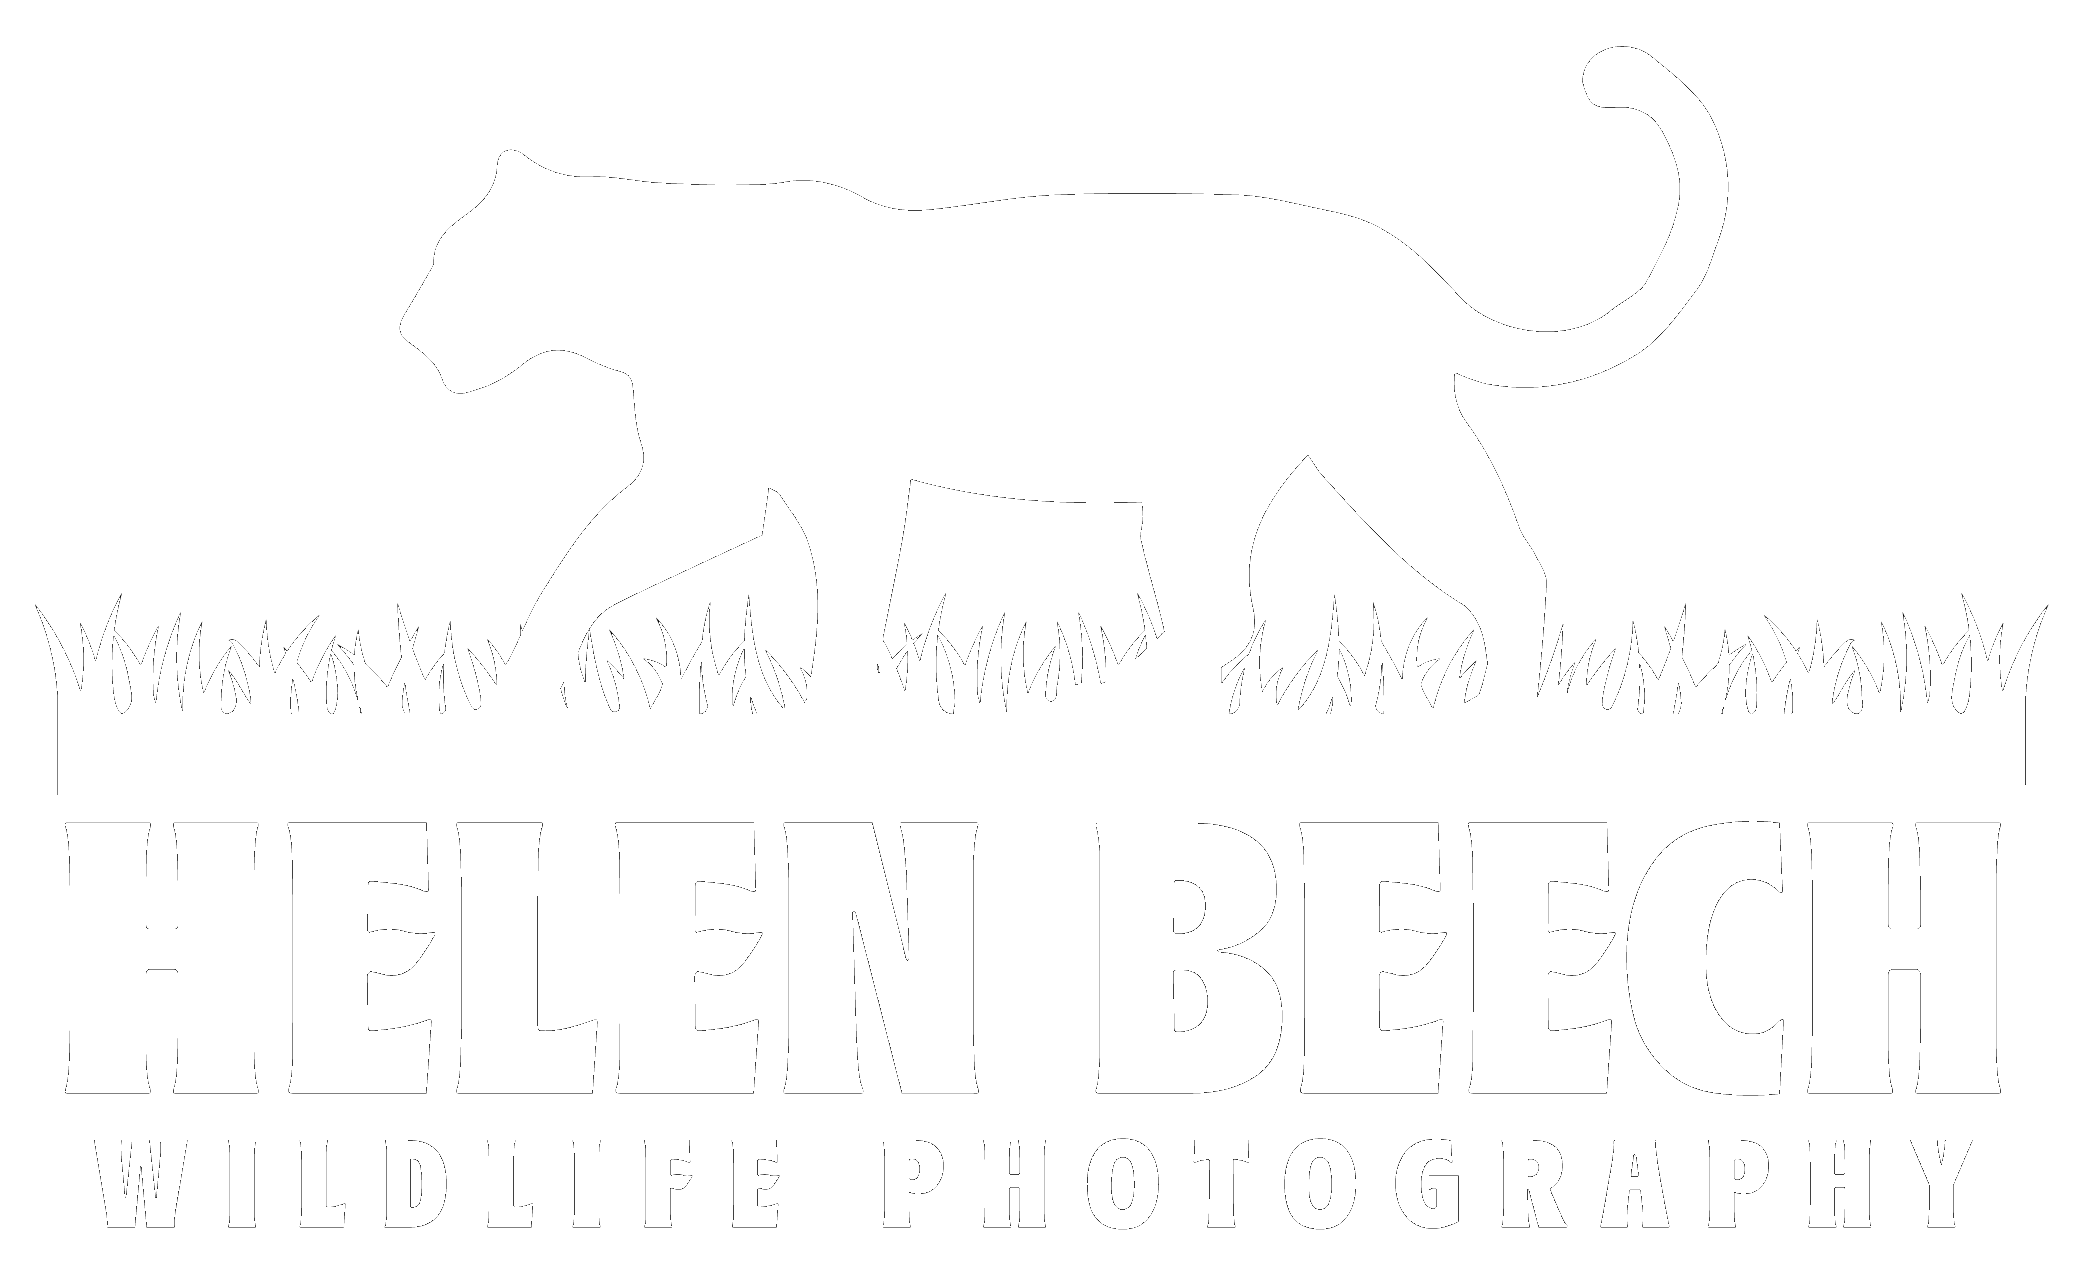 Helen Beech Wildlife Photography 01 White